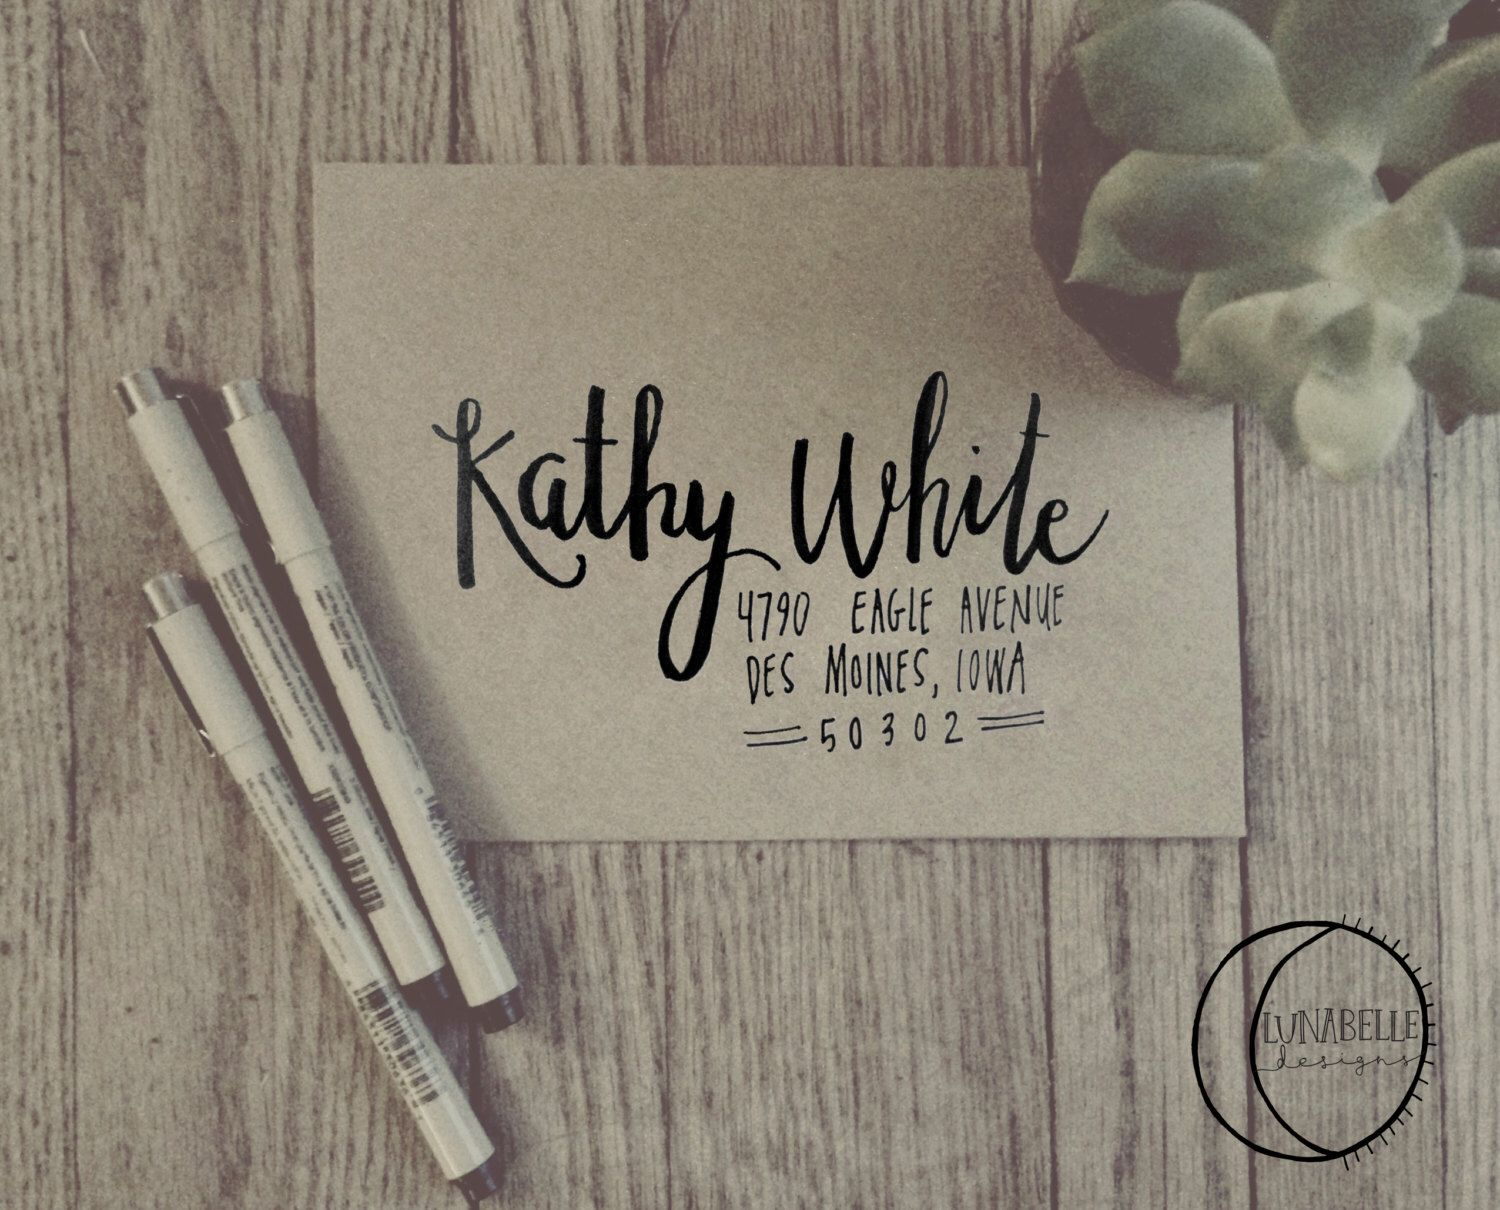 handwrite or print wedding invitation envelopes%0A Kathy Style    Envelope Addressing services    Hand lettered by cassfet on  Etsy https